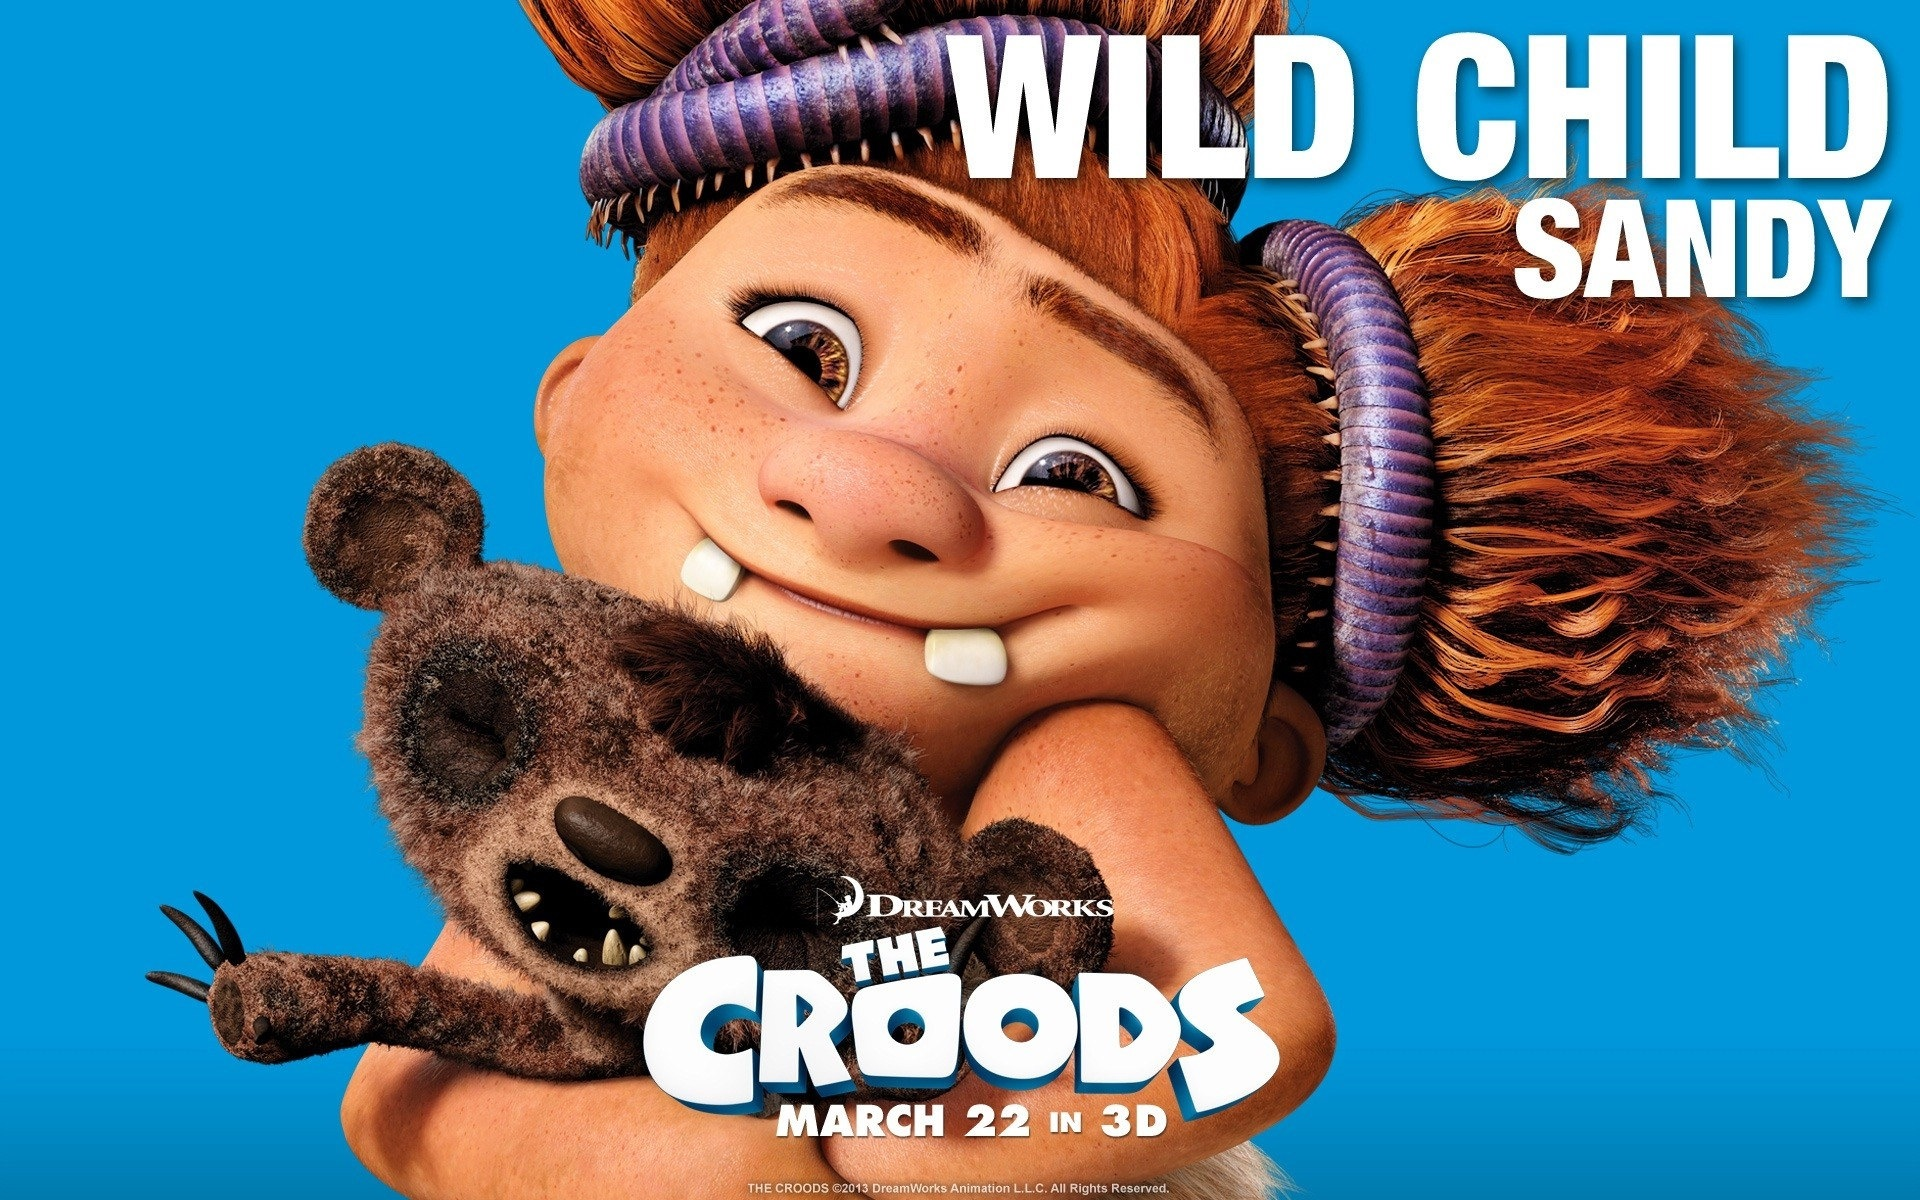 Los-Croods-HD-Movie (7)